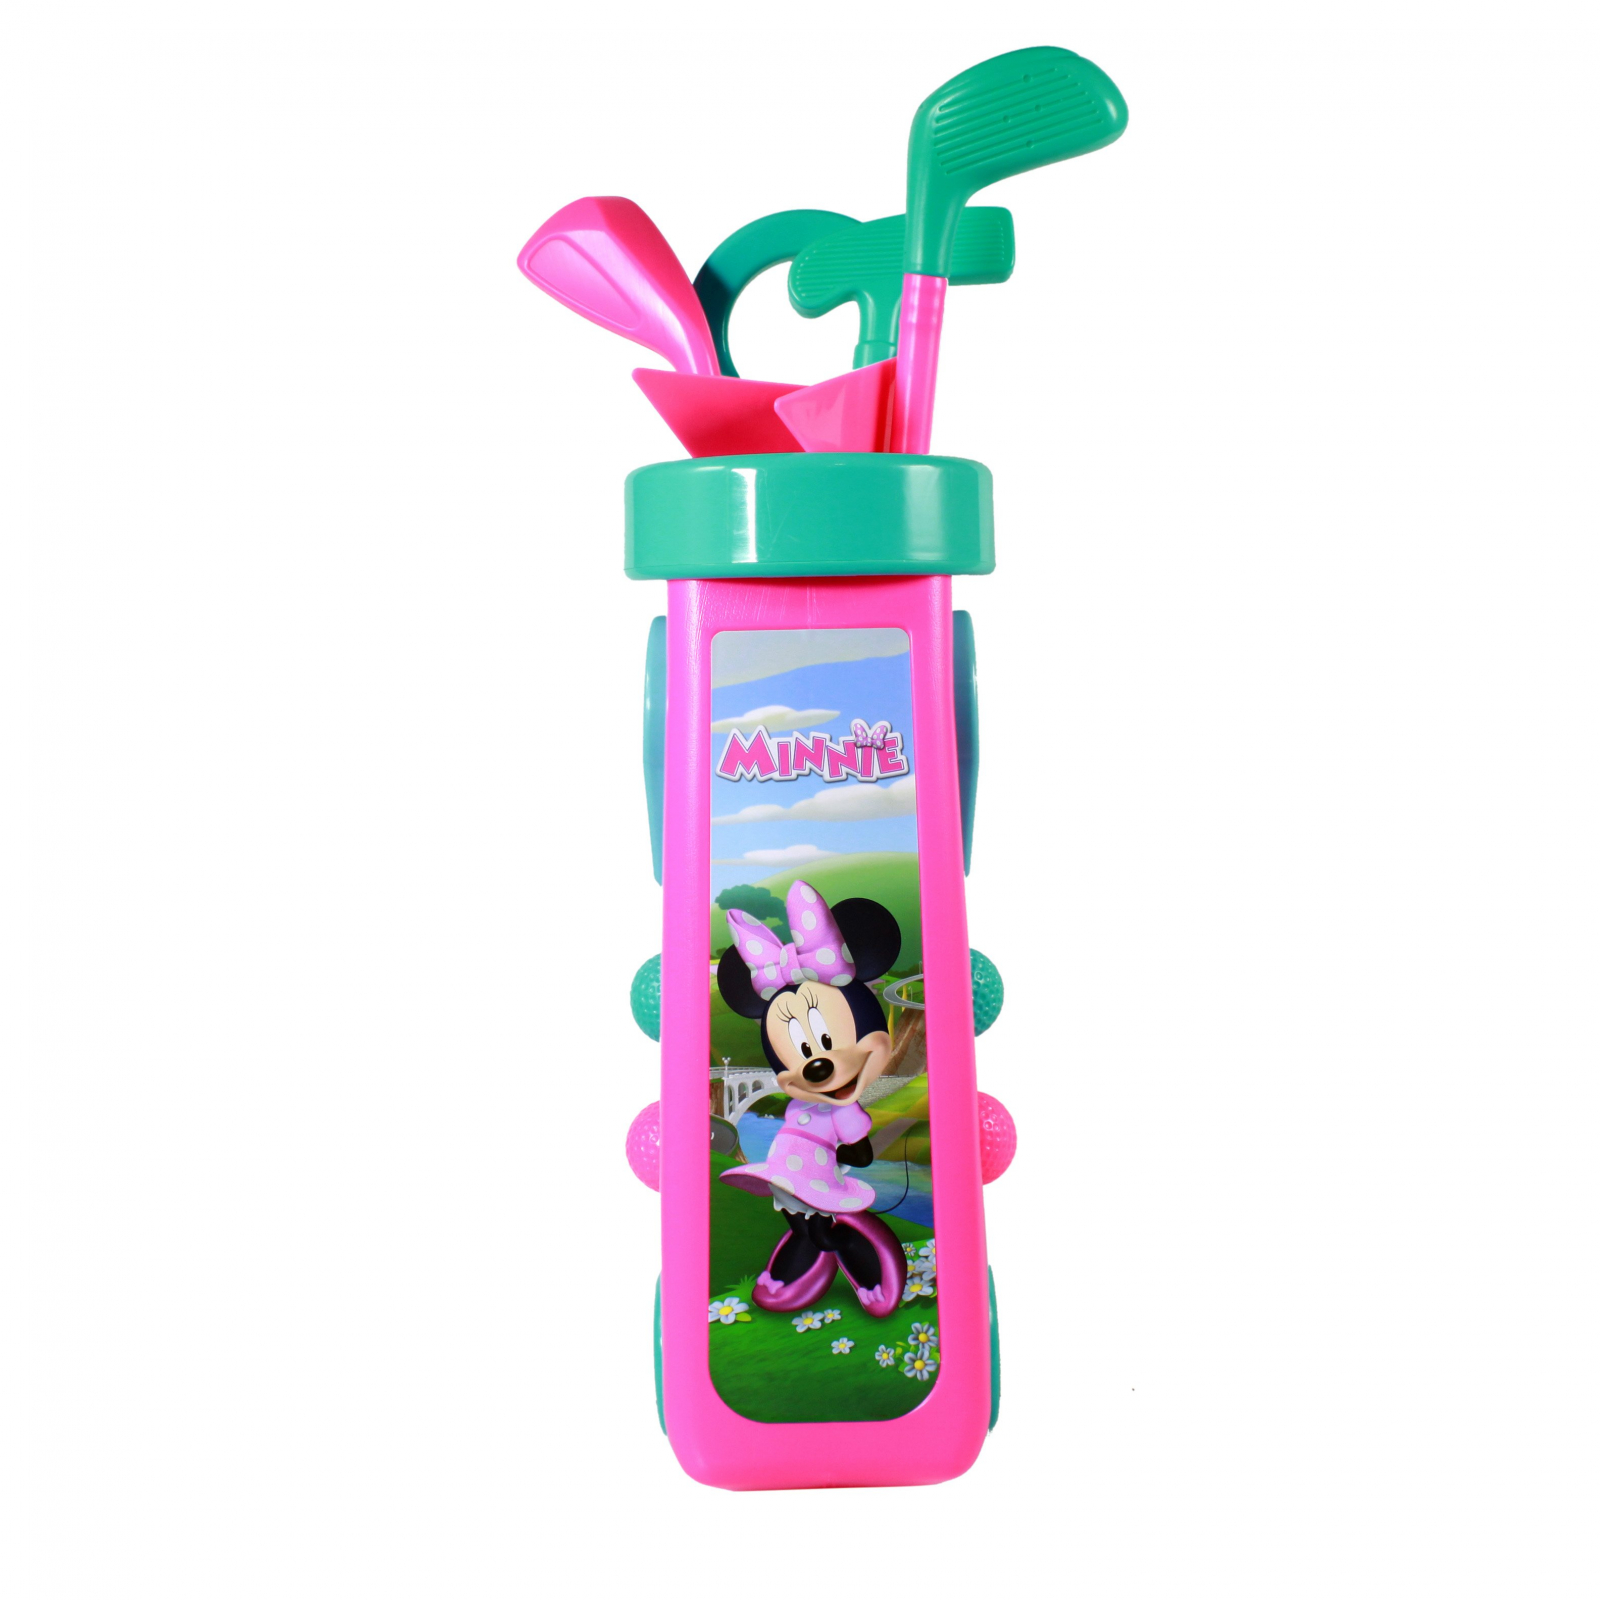 Disney Minnie Mouse Kids Golf Caddy Play Set 10 Pieces